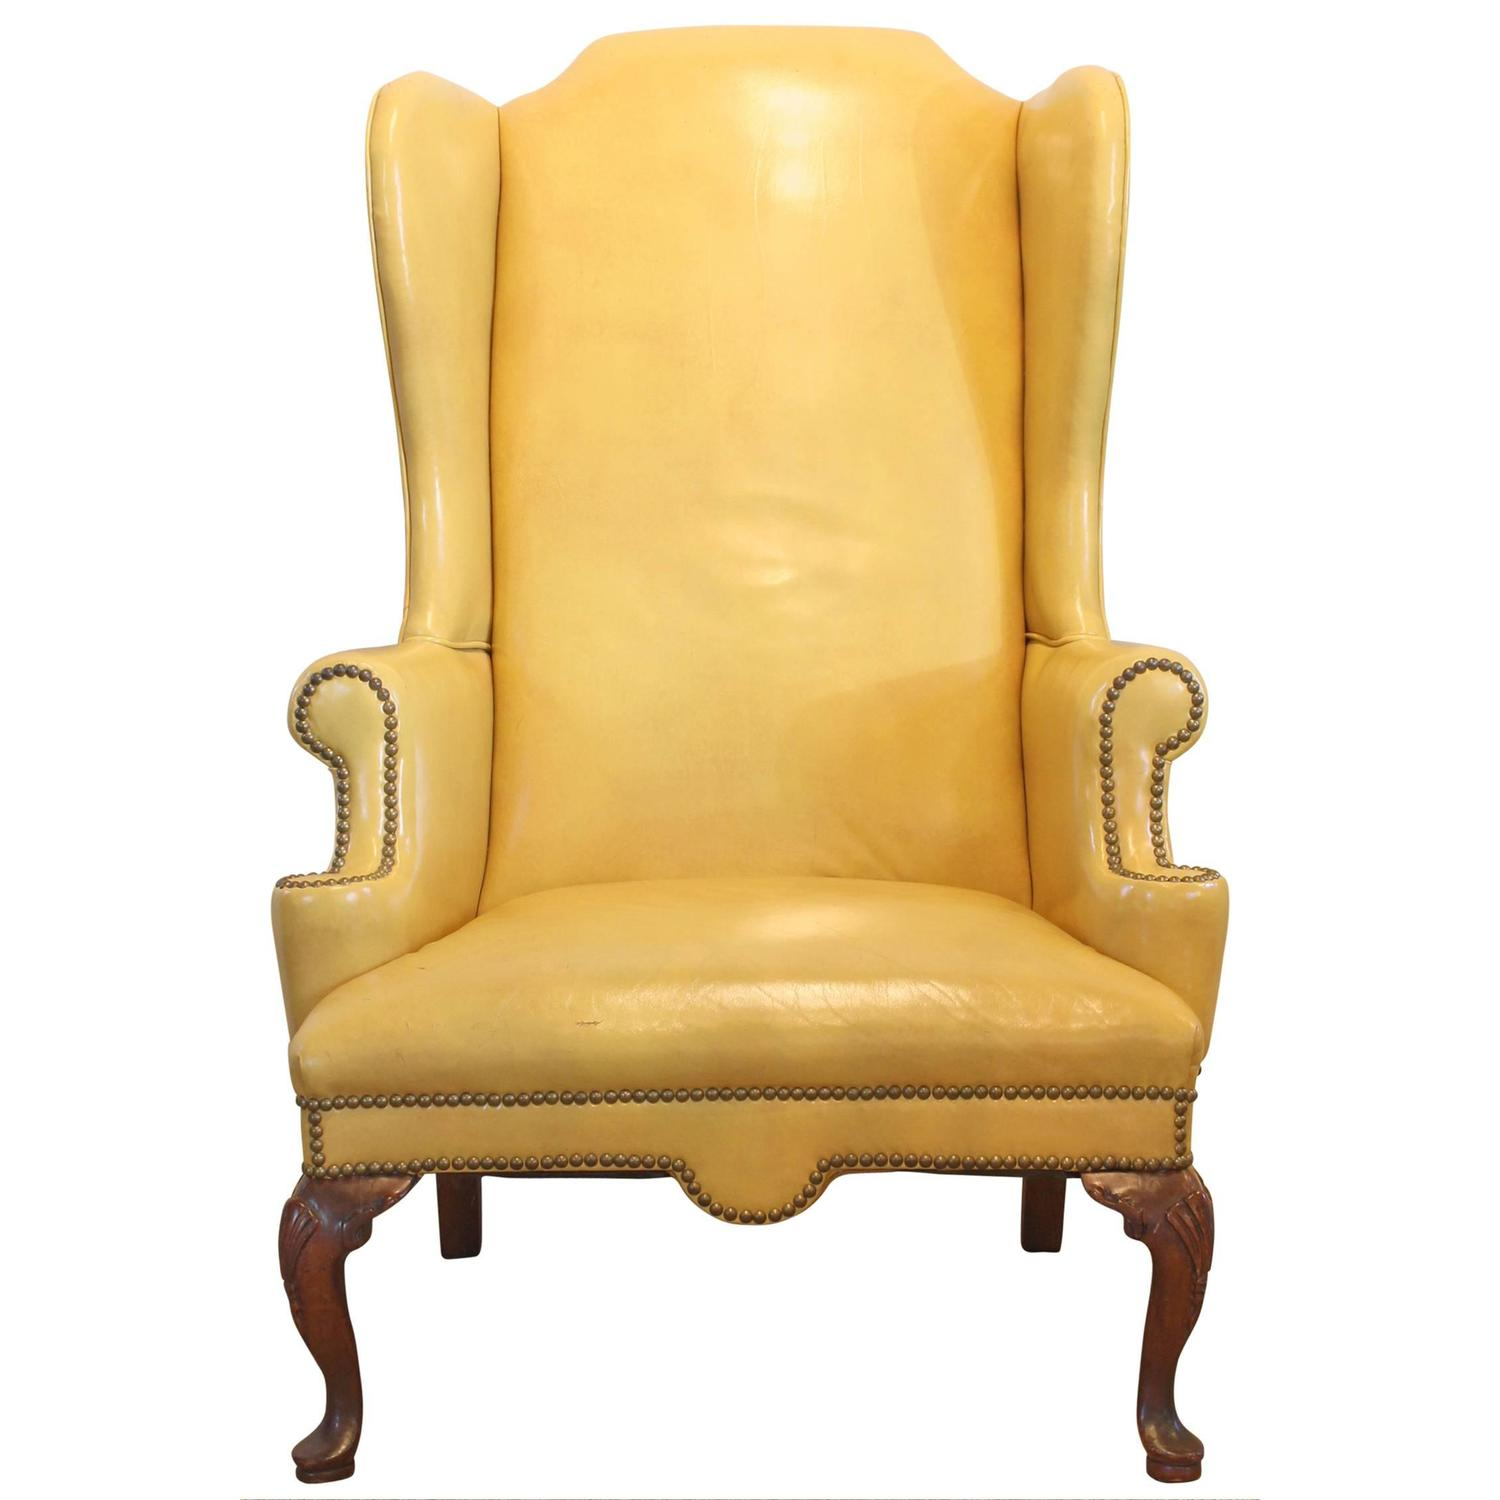 Delicieux Mustard Yellow Leather Wing Chair At 1stdibs